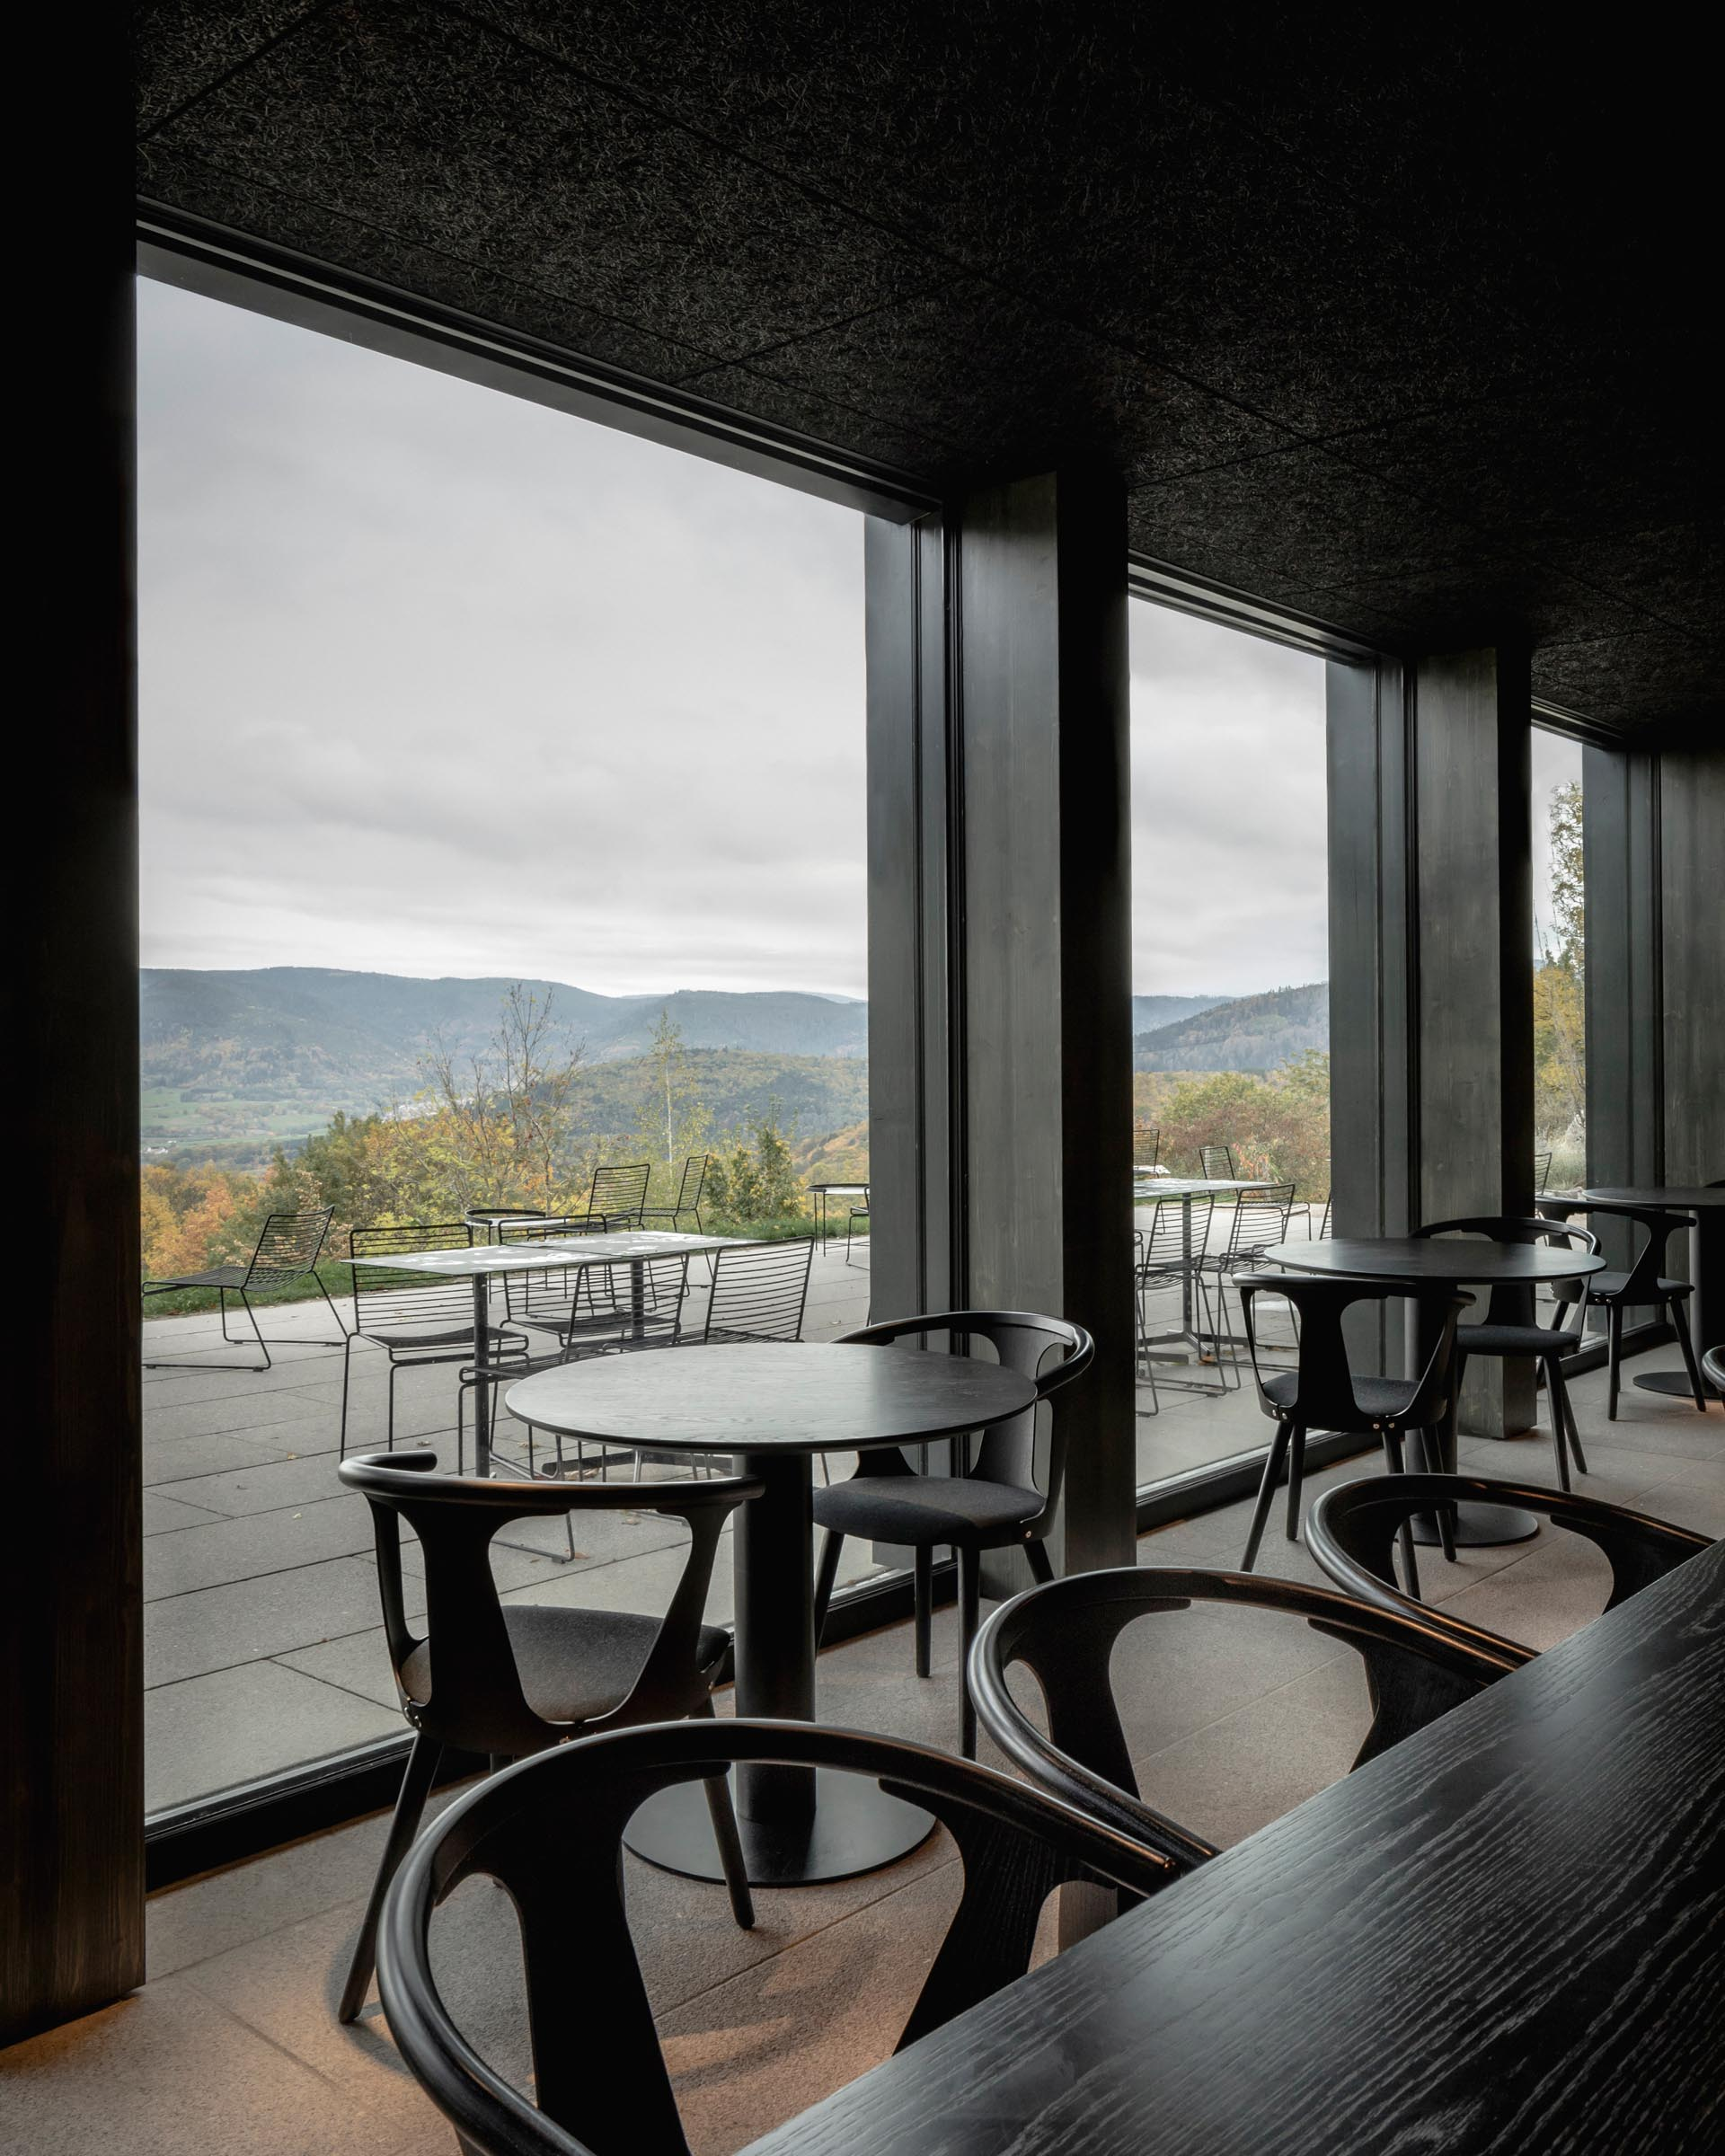 A modern hotel restaurant with dark wood accents and large windows.